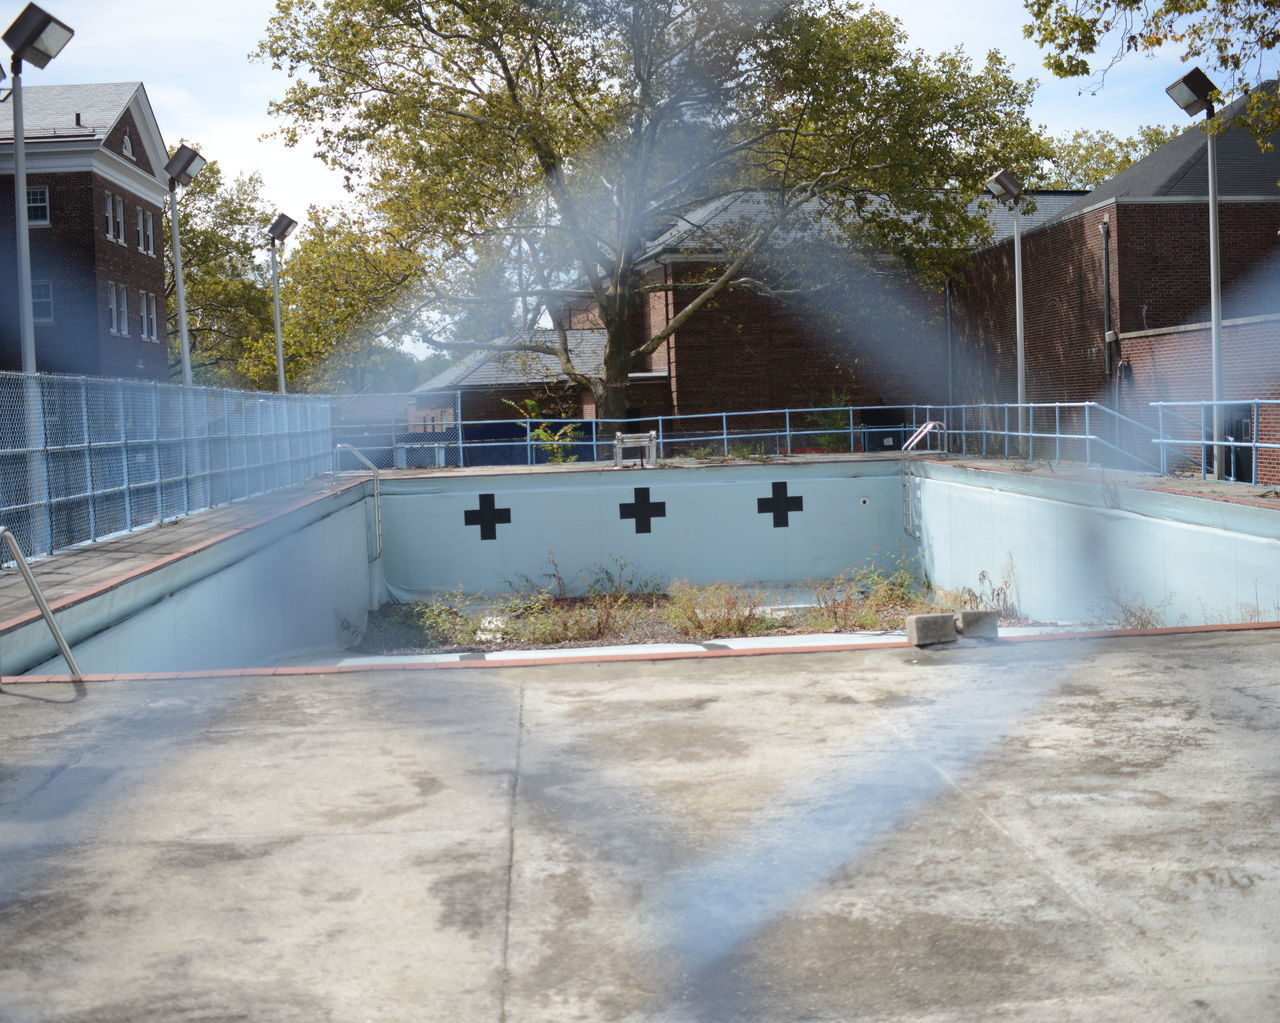 architecture, built structure, building exterior, tree, water, swimming pool, day, outdoors, motion, sport, no people, skateboard park, competitive sport